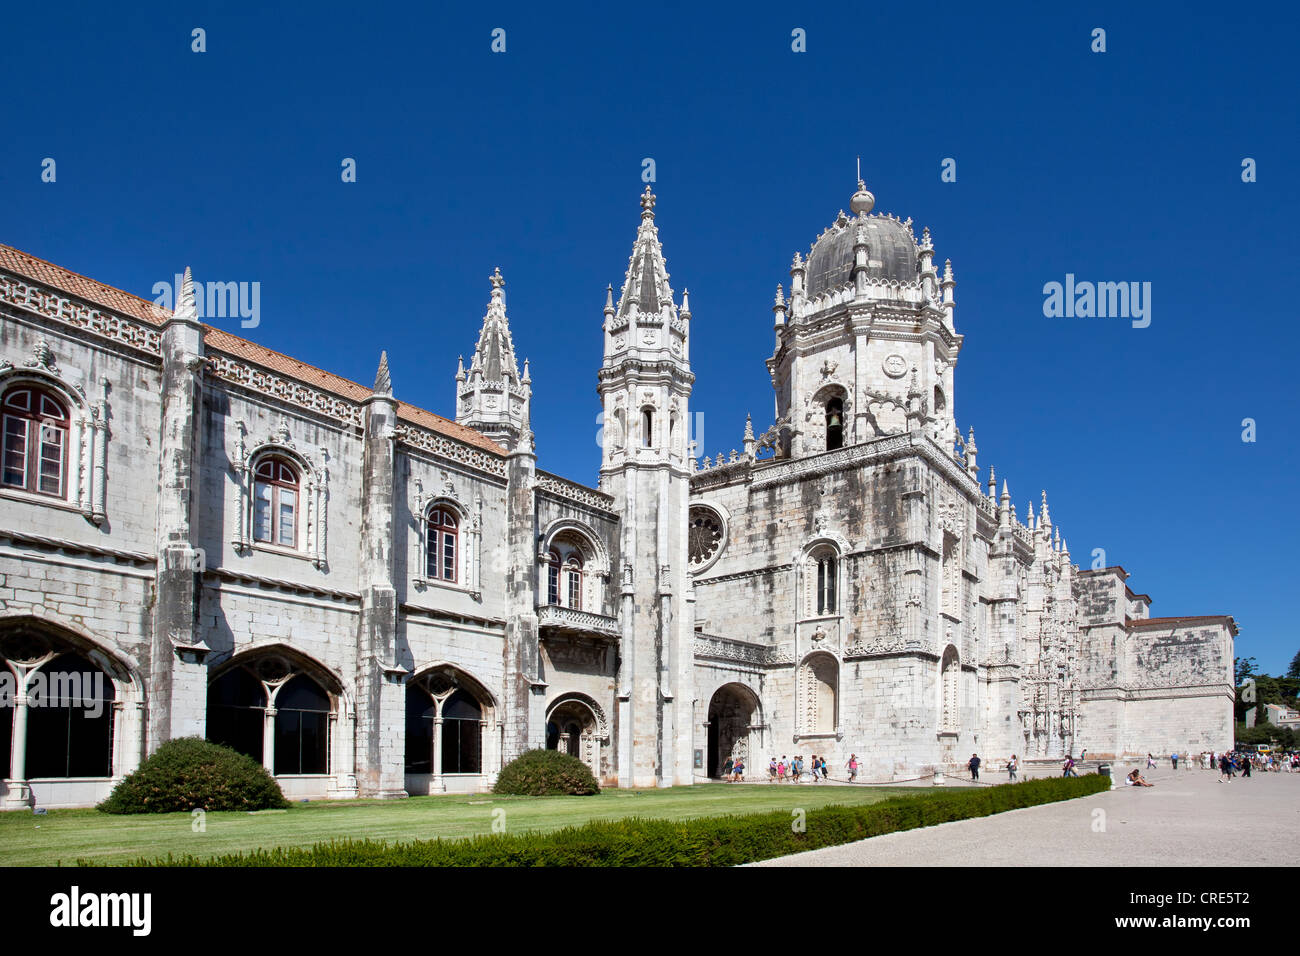 Hieronymus Monastery, Mosteiro dos Jeronimos, UNESCO World Heritage Site, in the district of Belem in Lisbon, Portugal, - Stock Image